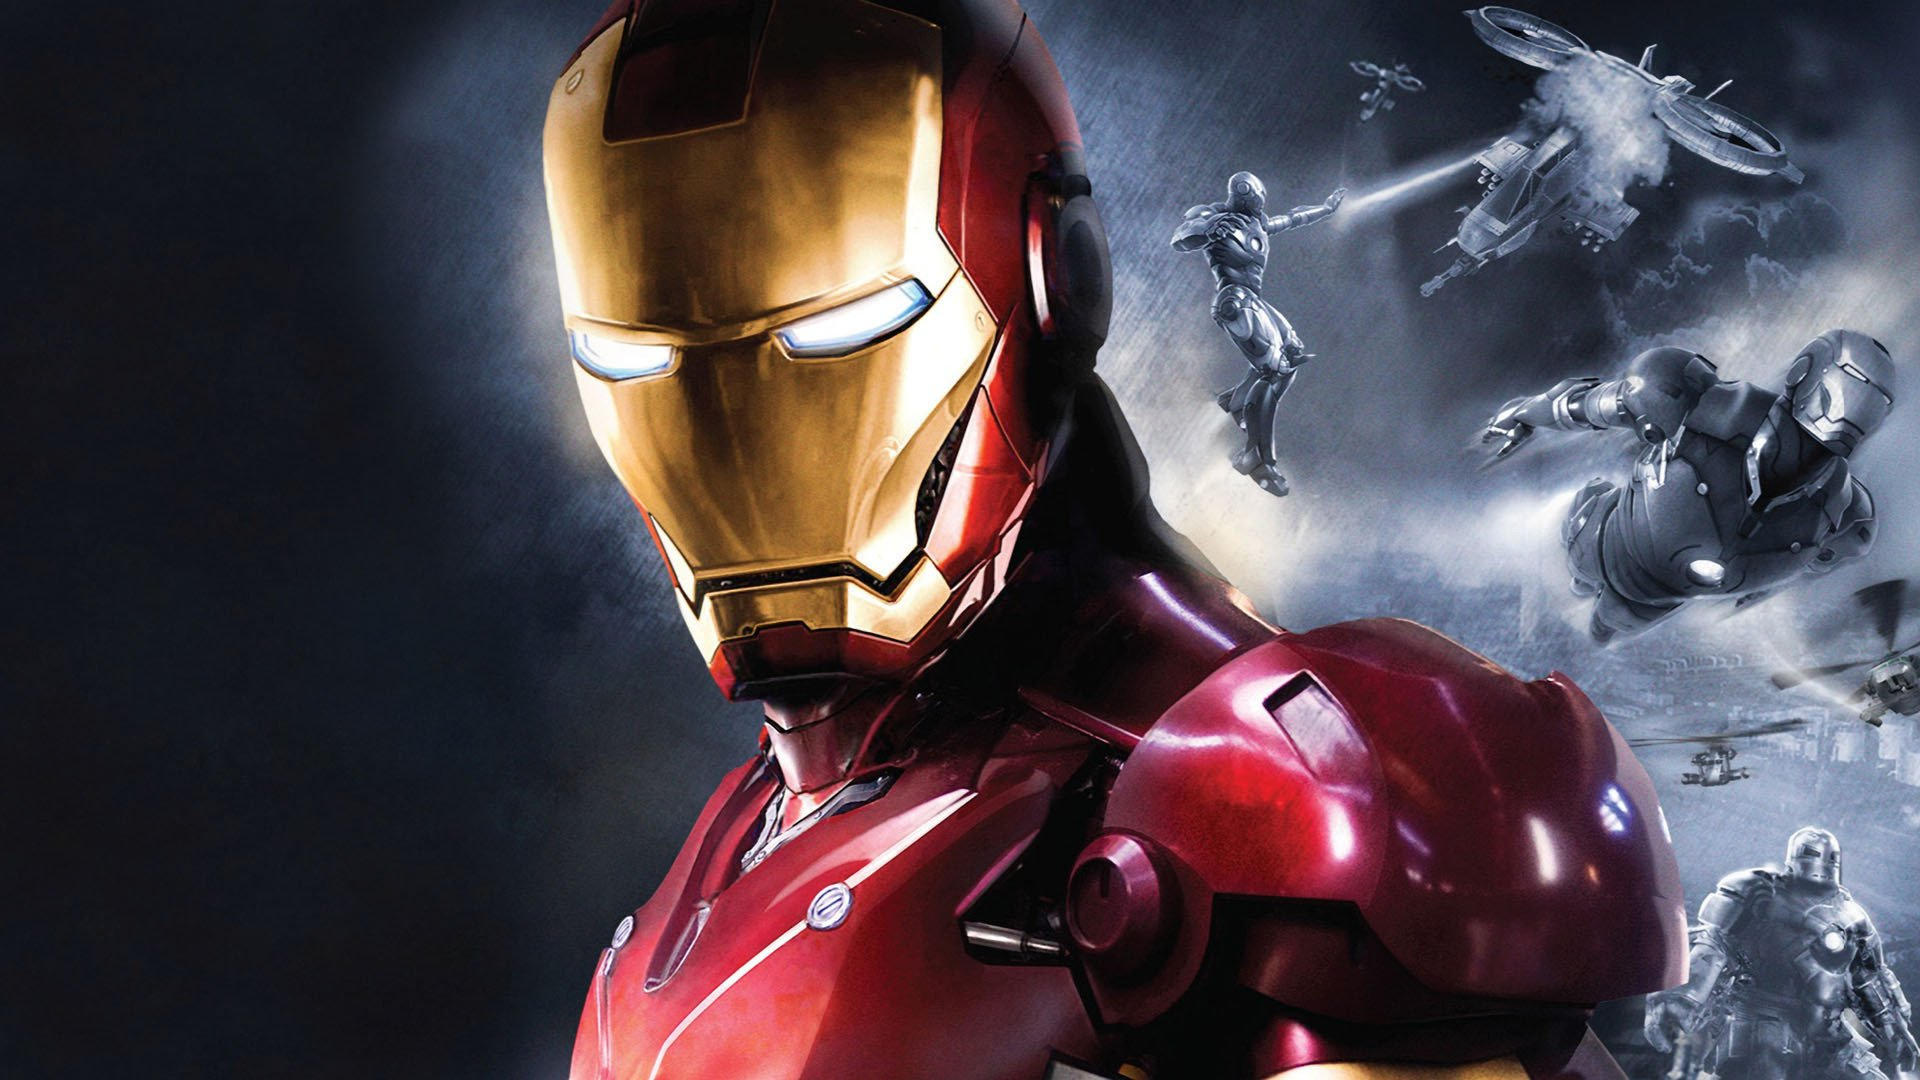 iron man full hd wallpaper and background image. Black Bedroom Furniture Sets. Home Design Ideas